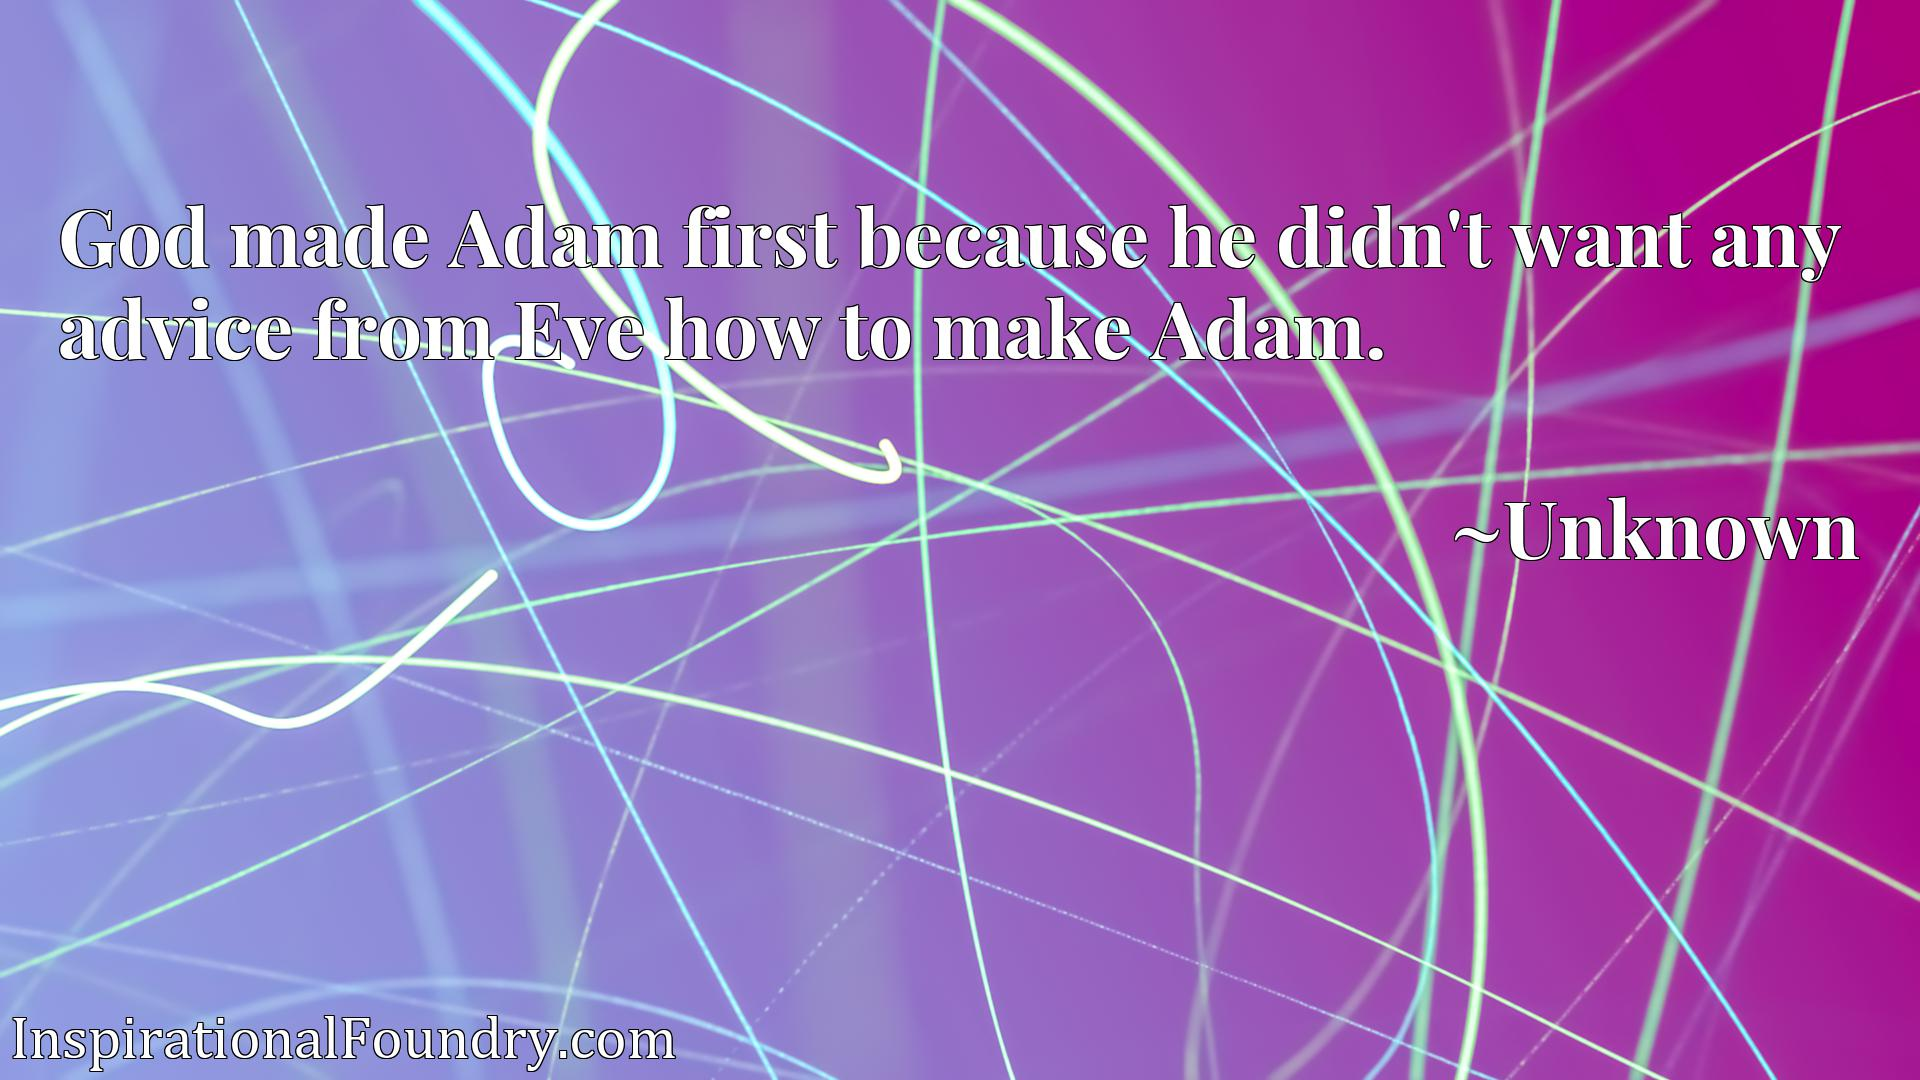 God made Adam first because he didn't want any advice from Eve how to make Adam.